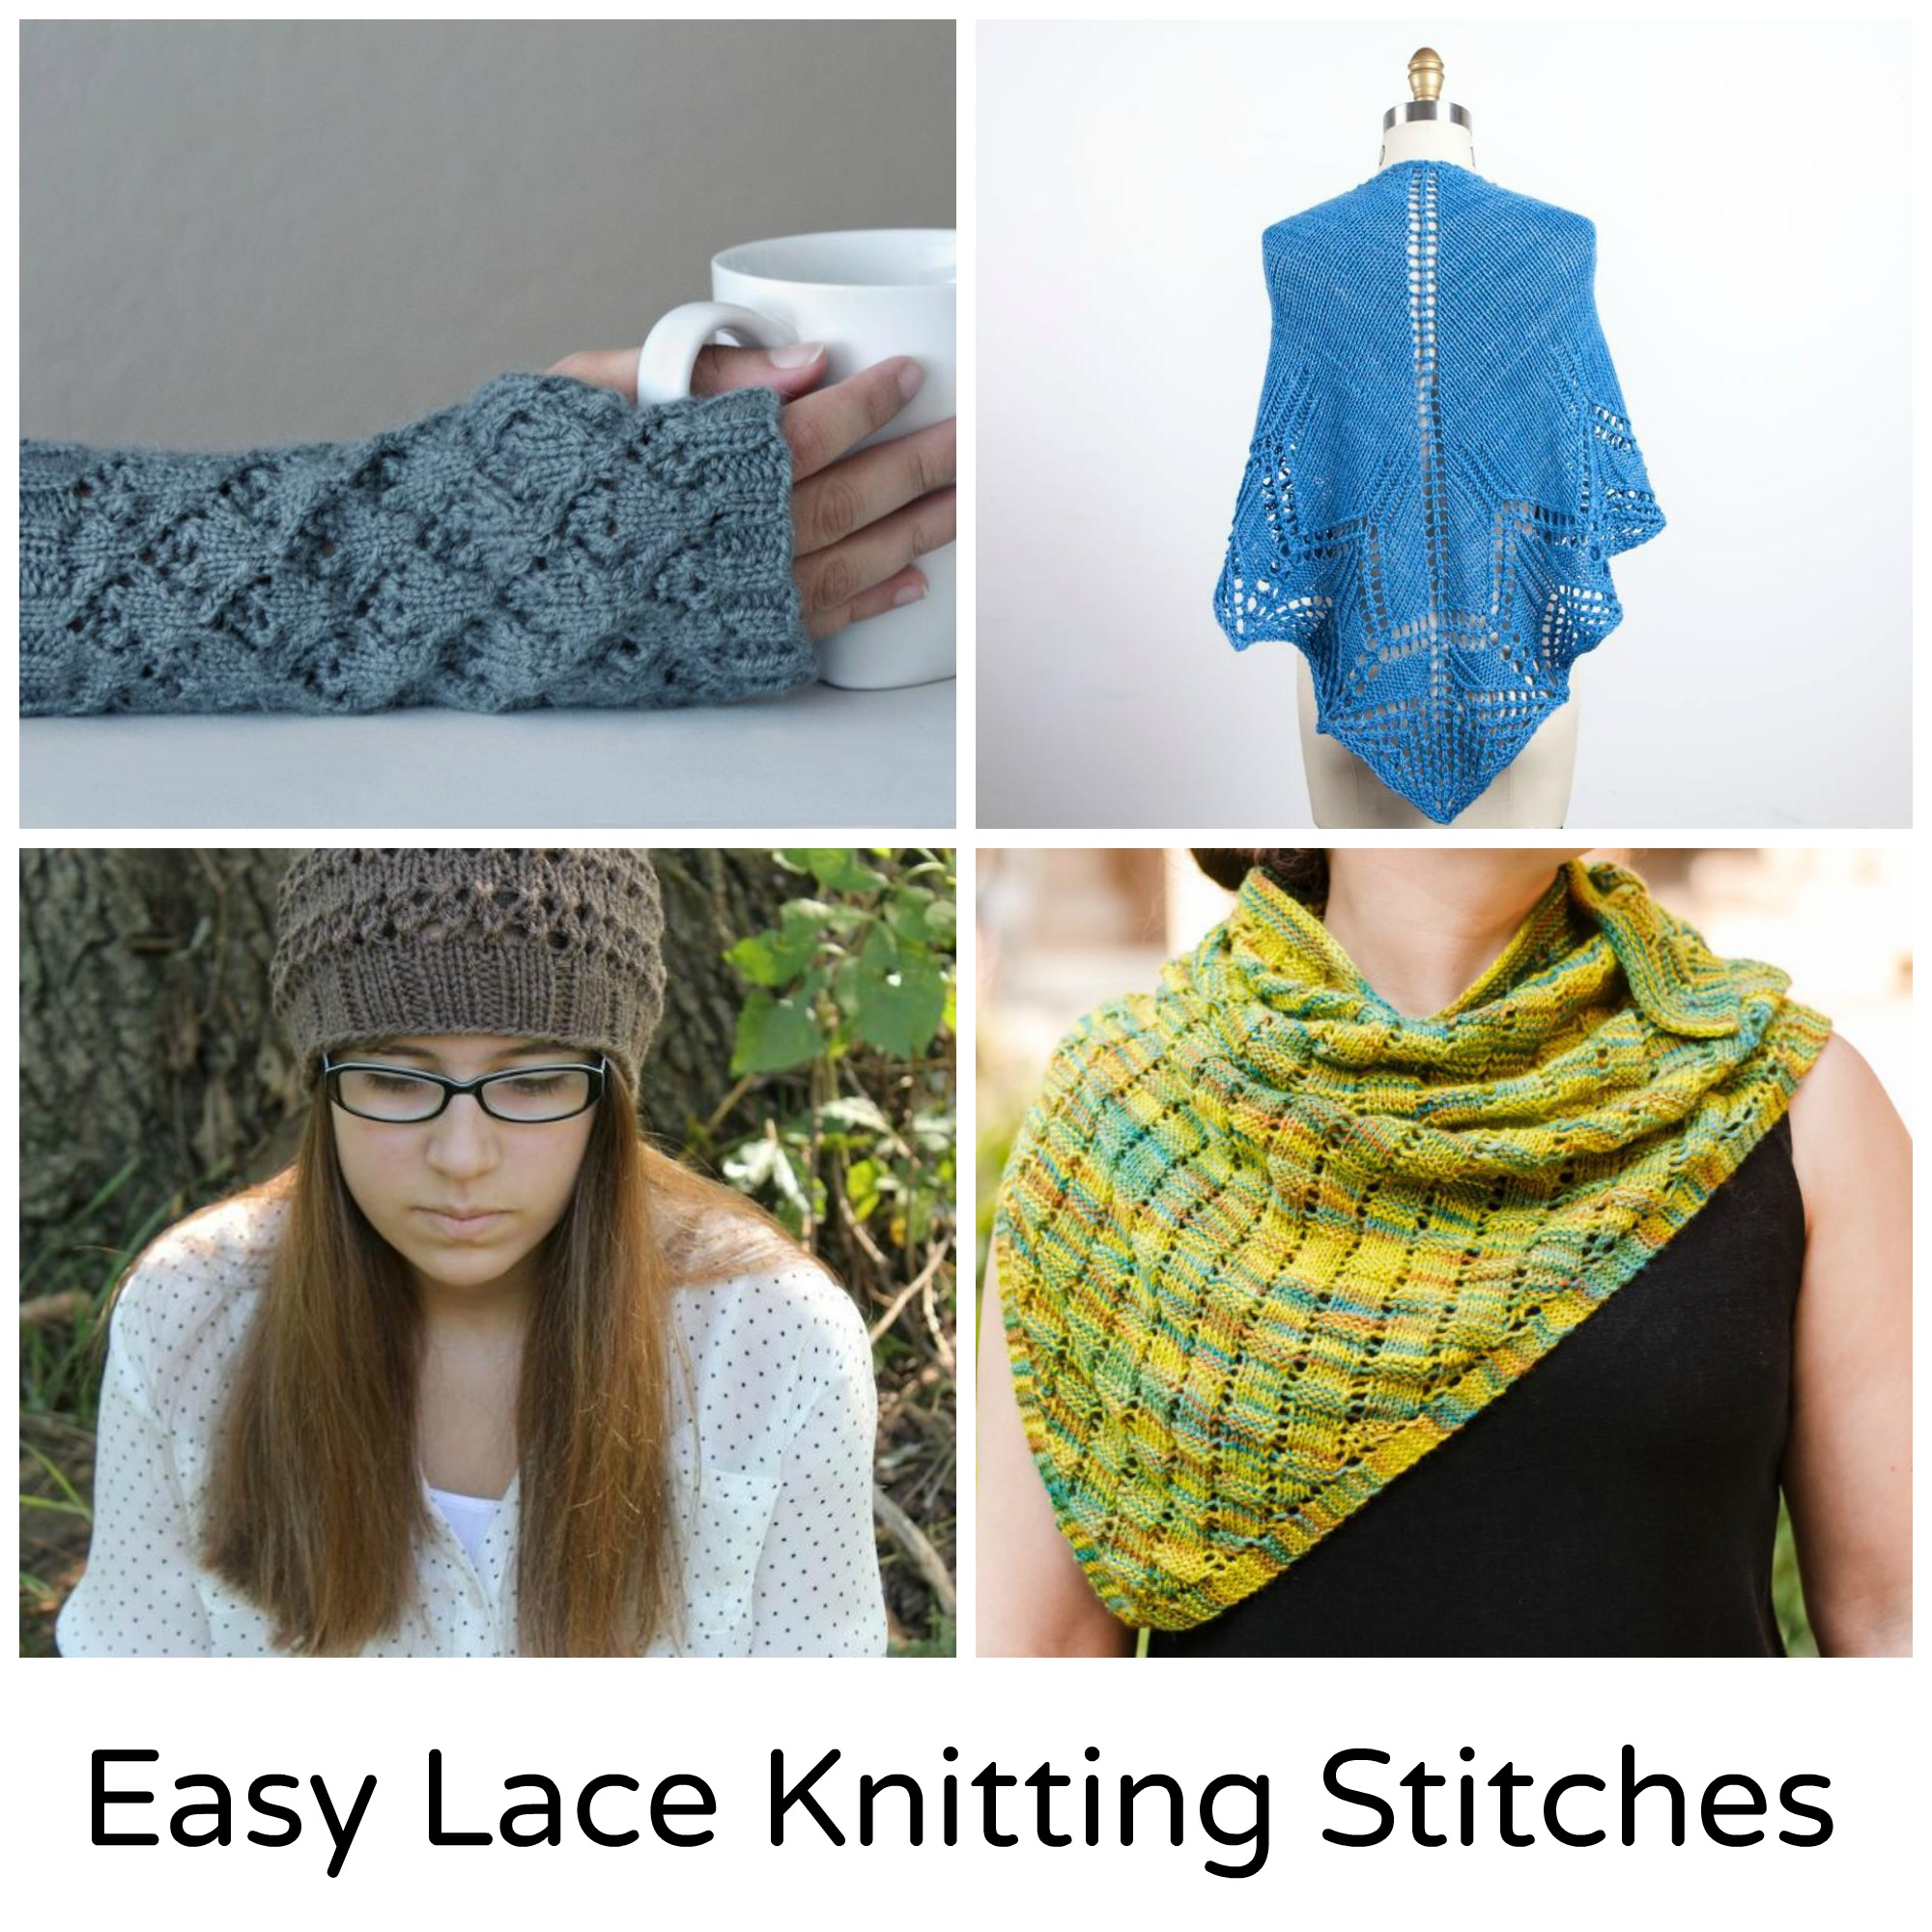 Easy Lace Knitting Stitches